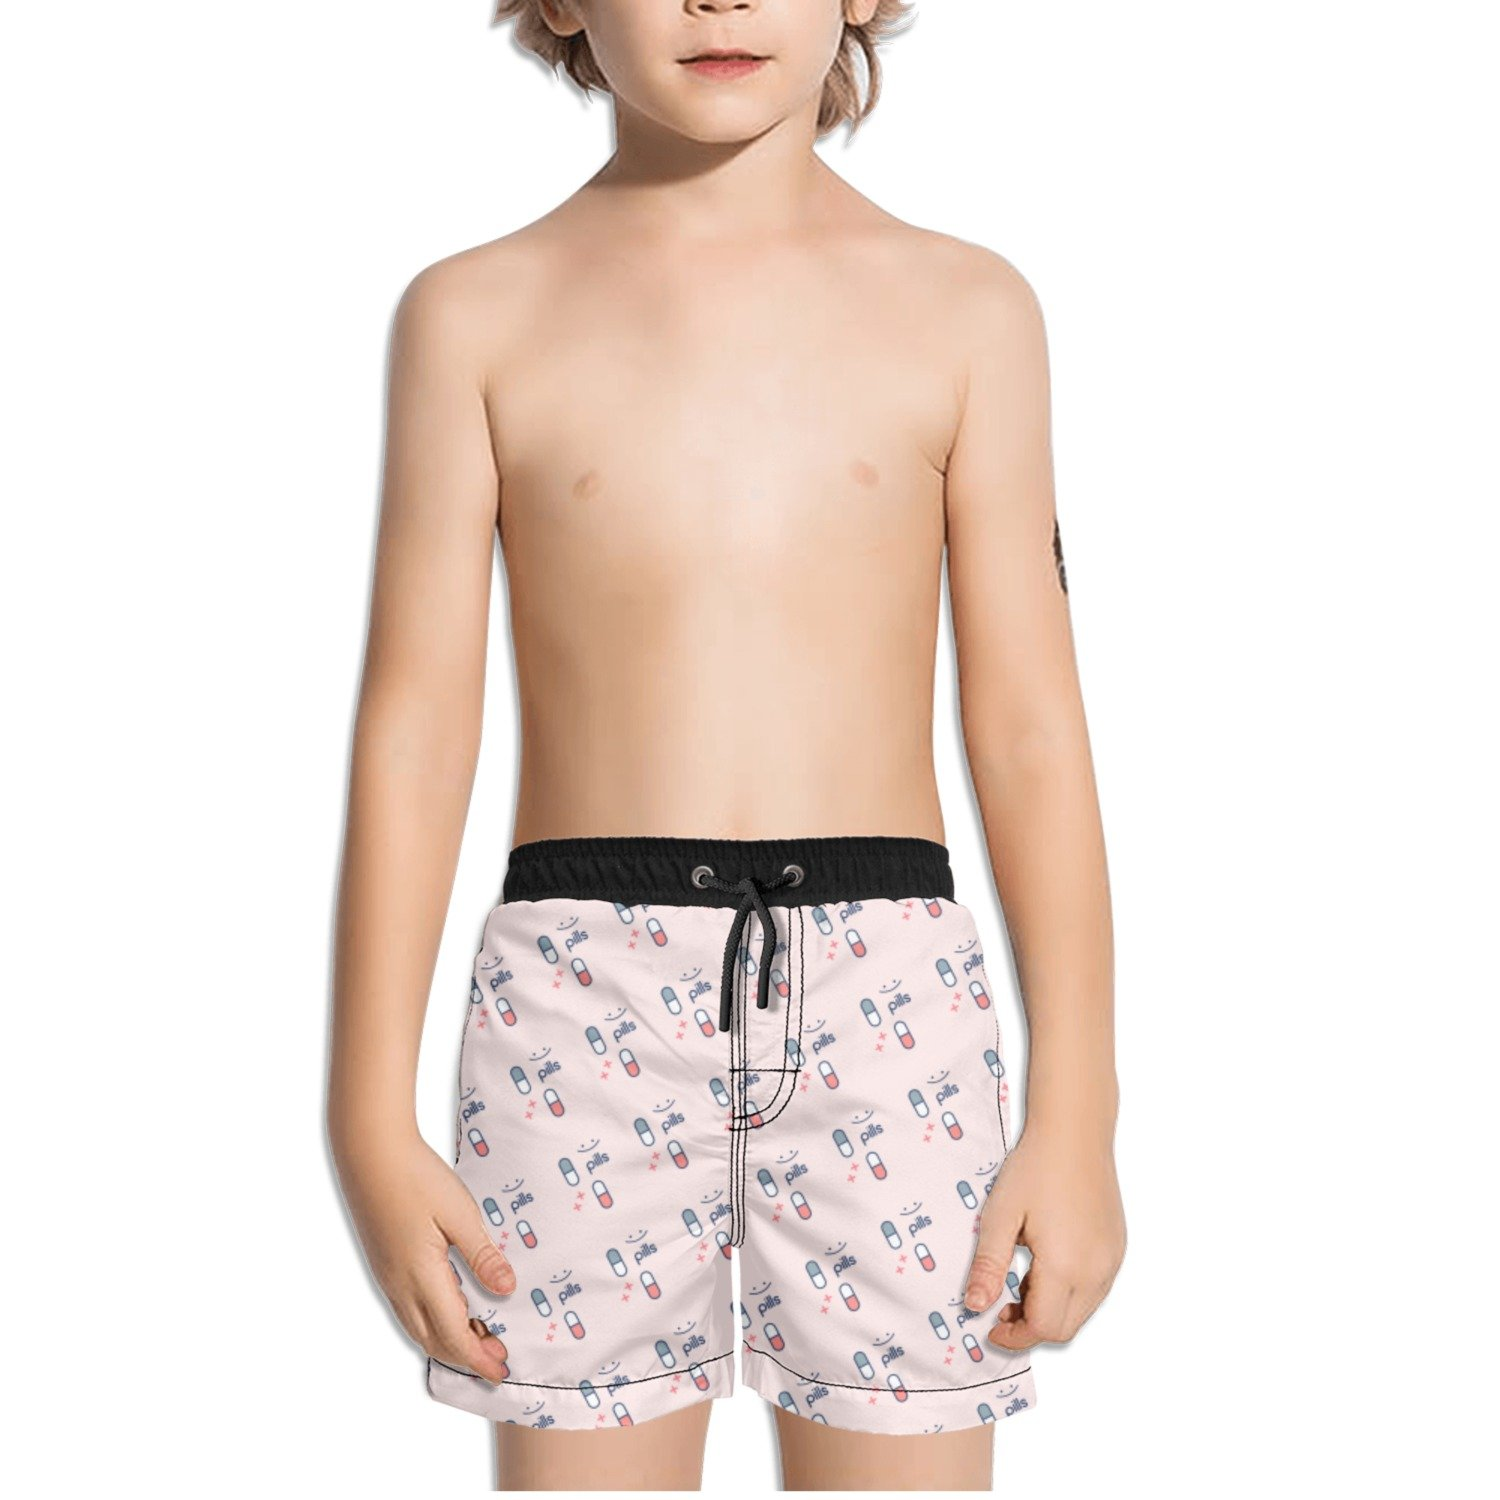 Trum Namii Boys Quick Dry Swim Trunks Type of Chemical Bonds Science Chemistry Shorts